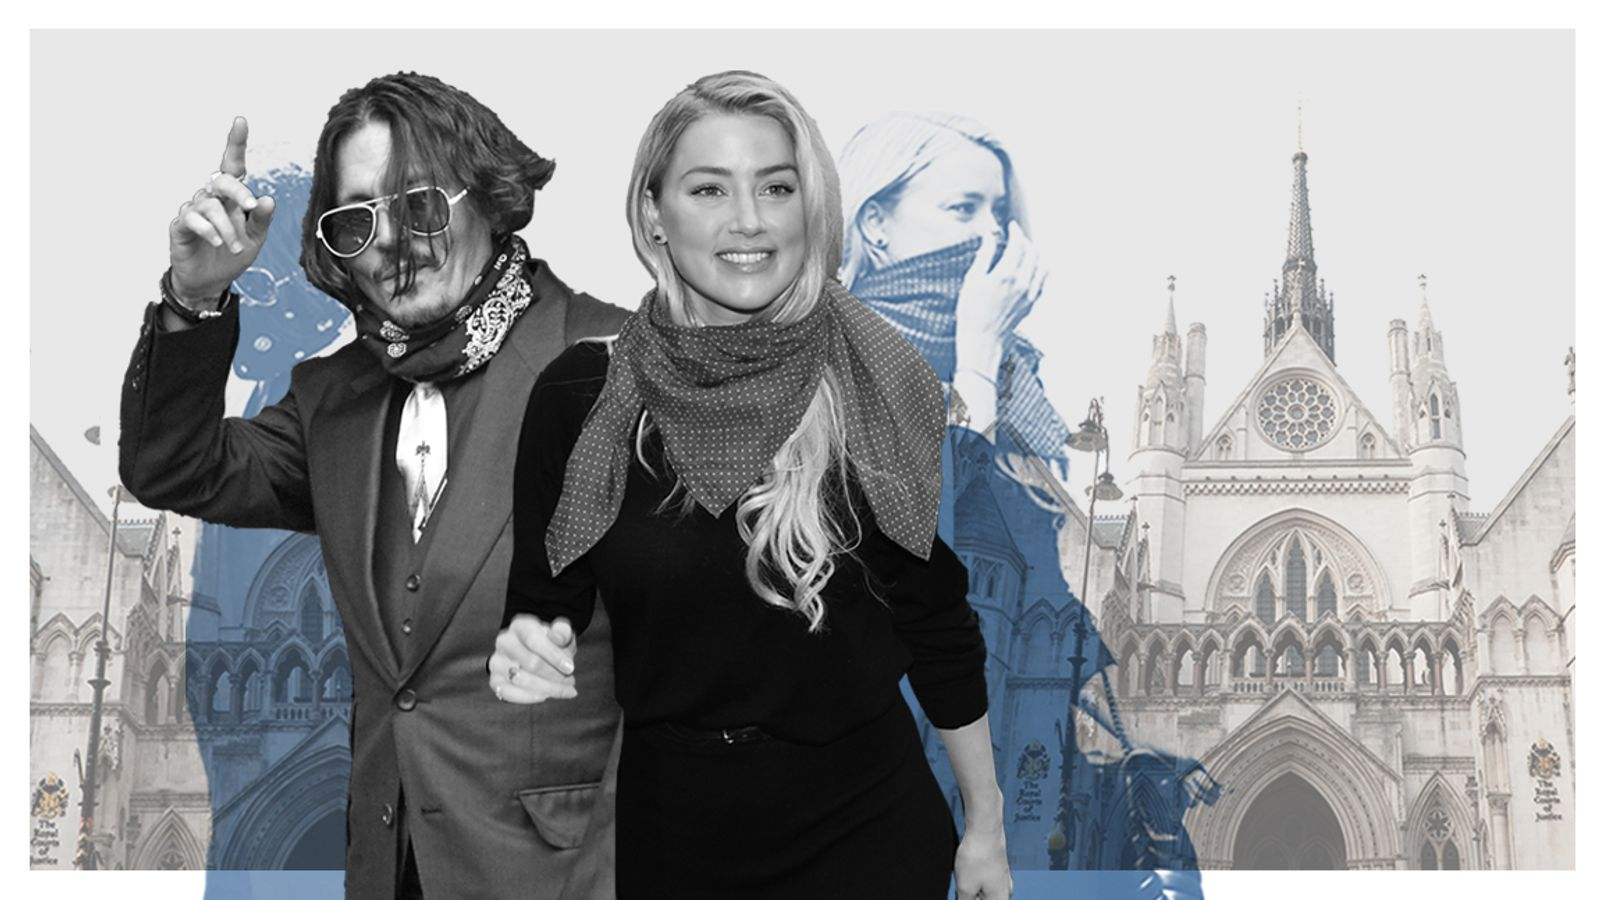 Johnny Depp and Amber Heard: All the revelations from an explosive week in court - Sky News